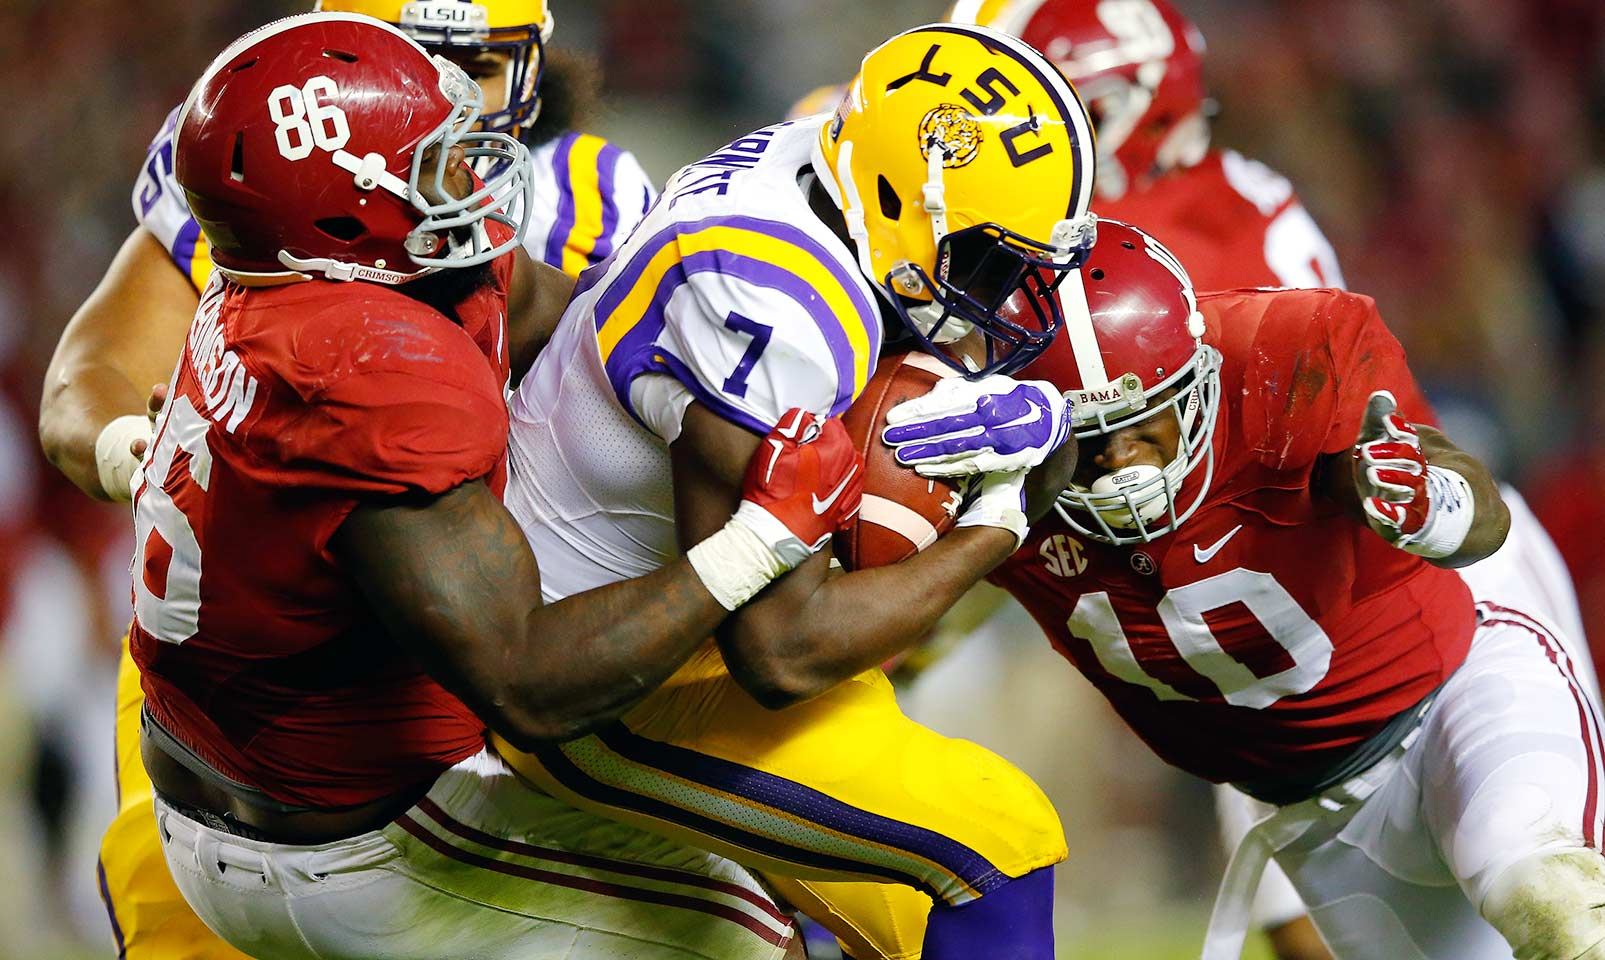 Alabama 30, LSU 16: The Crimson Tide defense did what had previously seemed impossible—stop Leonard Fournette. Alabama held the Tigers' star running back to 31 yards on 19 carries while Derrick Henry rushed for 210 yards and three touchdowns.